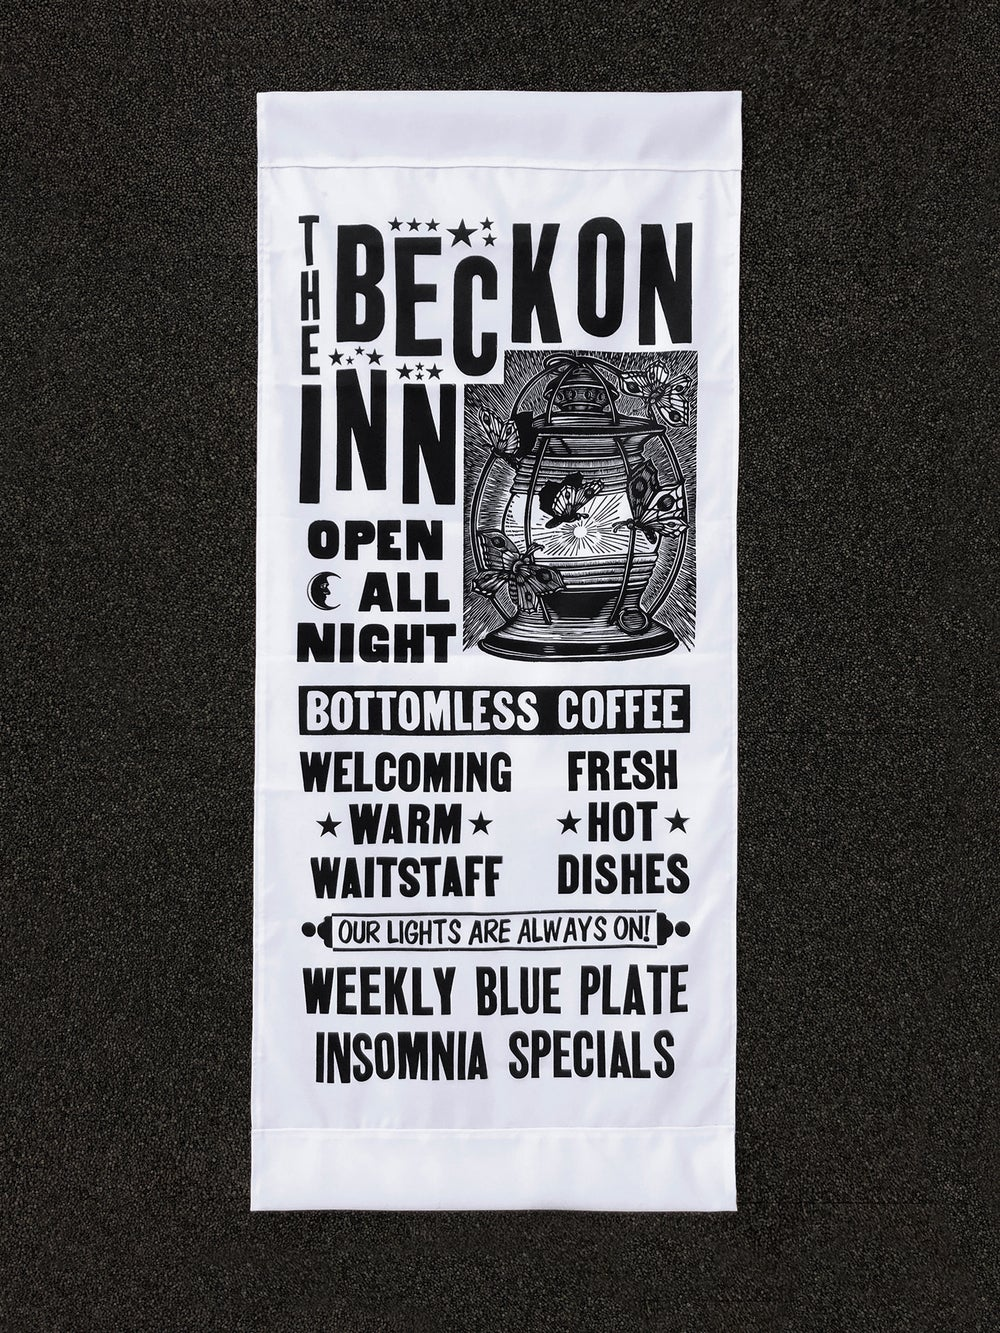 Image of The Beckon Inn